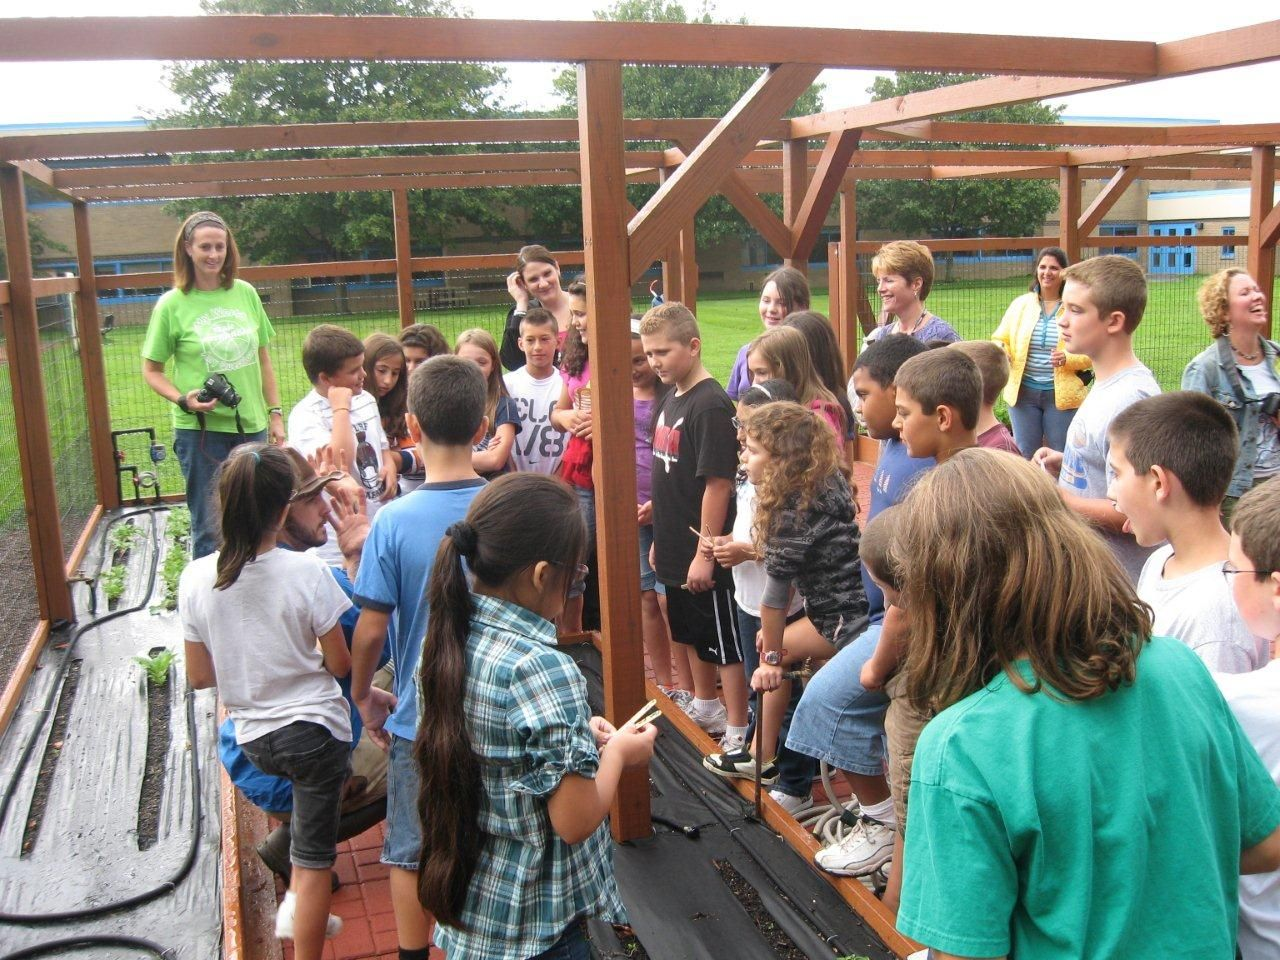 Our larger School Garden Systems are able to accommodate several classes at once and make wonderful outdoor classrooms!